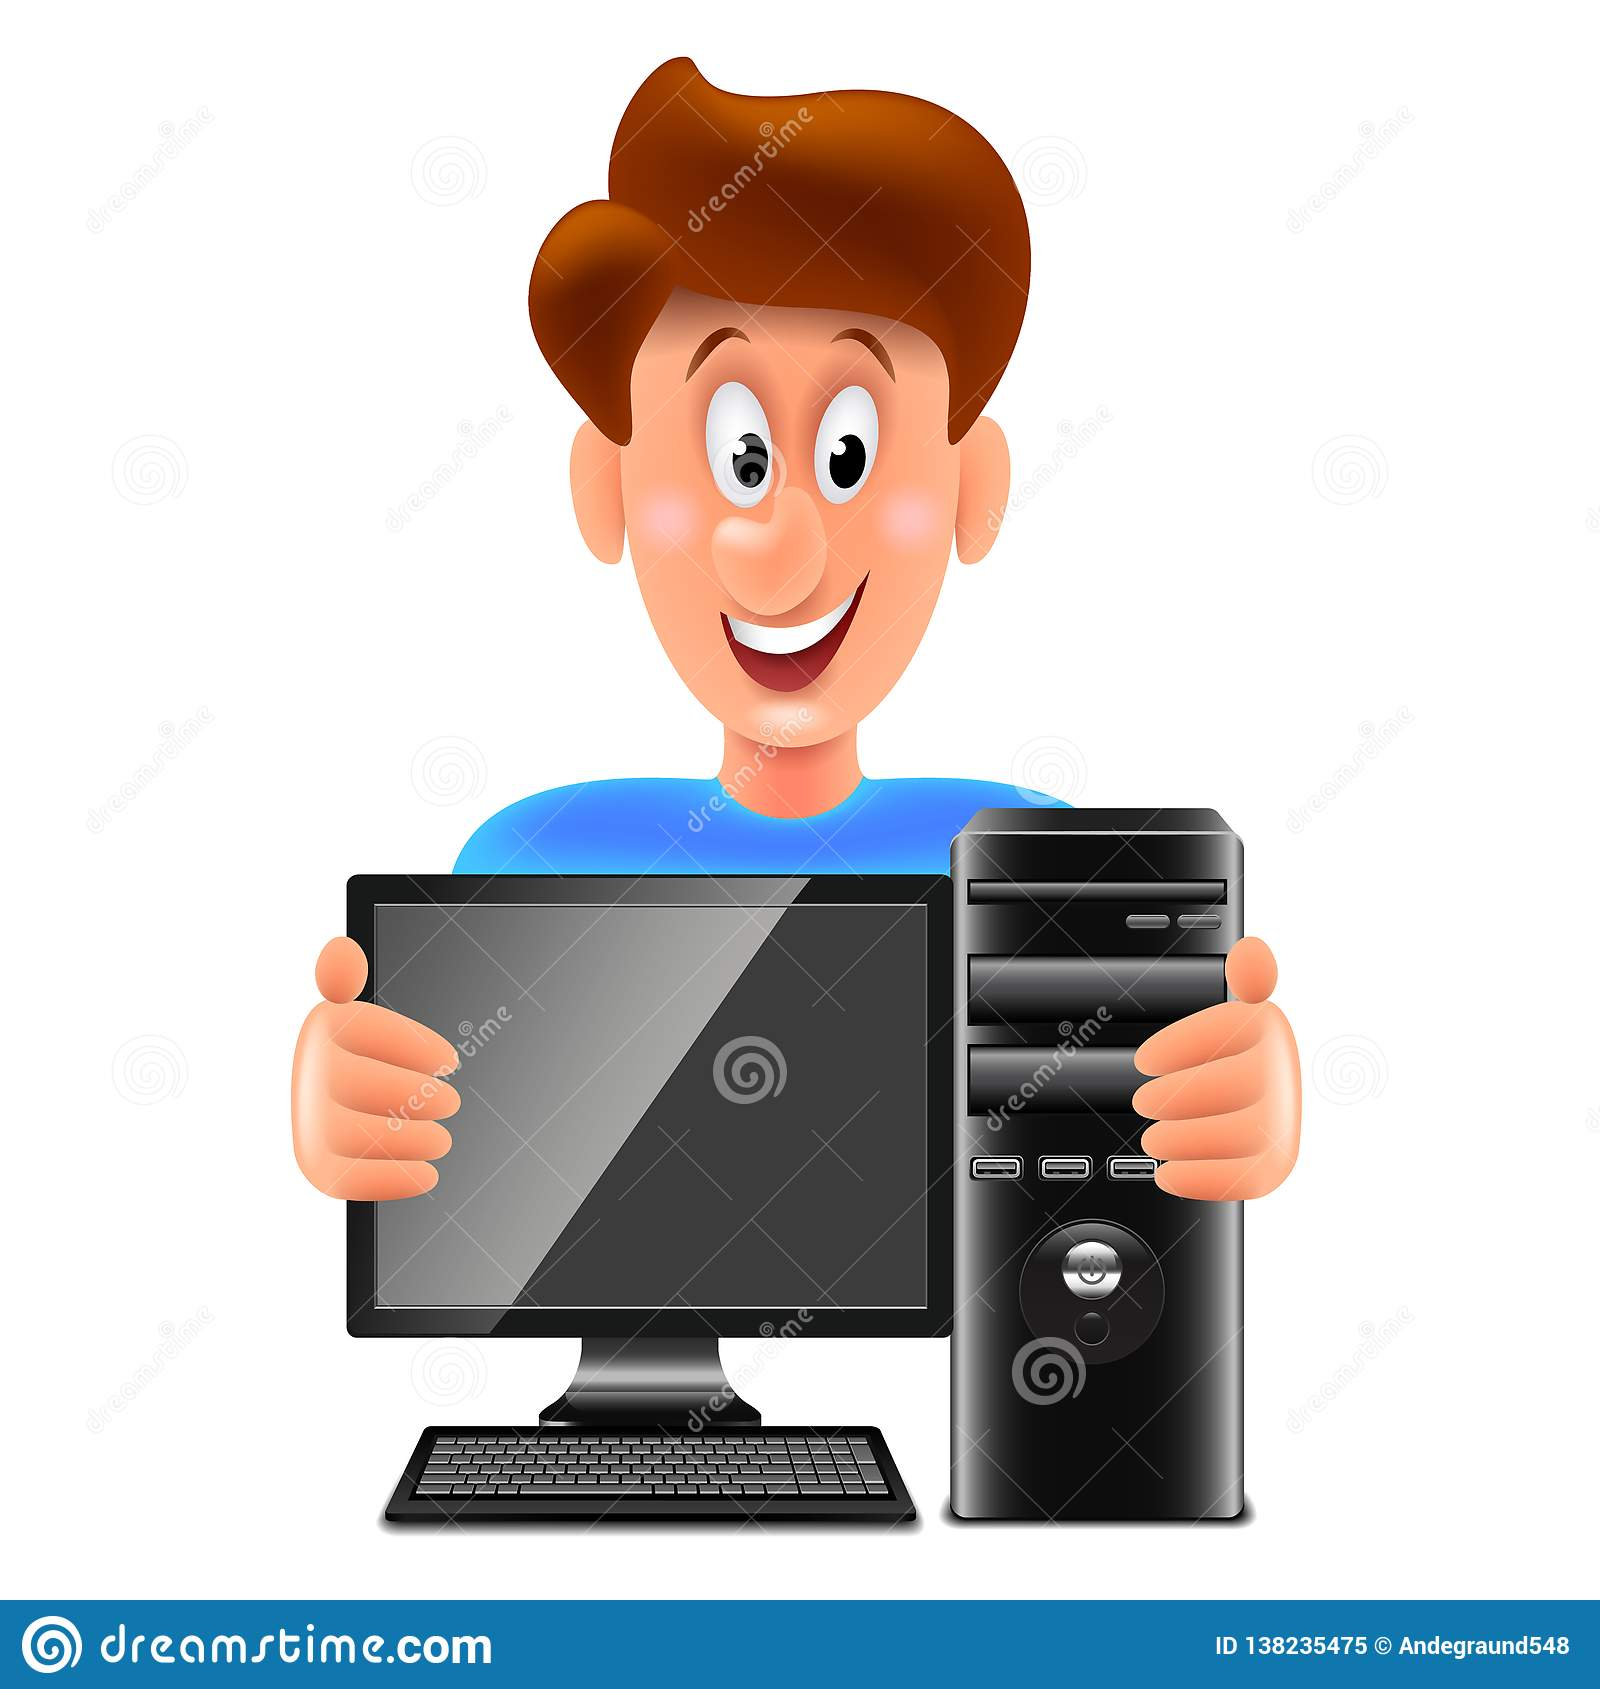 Cartoon Computer Repair Stock Illustrations 2 526 Cartoon Computer Repair Stock Illustrations Vectors Clipart Dreamstime While traditional 2d animated films are now made primarily with the help of computers. https www dreamstime com cartoon computer repair man isolated vector illustration white image138235475